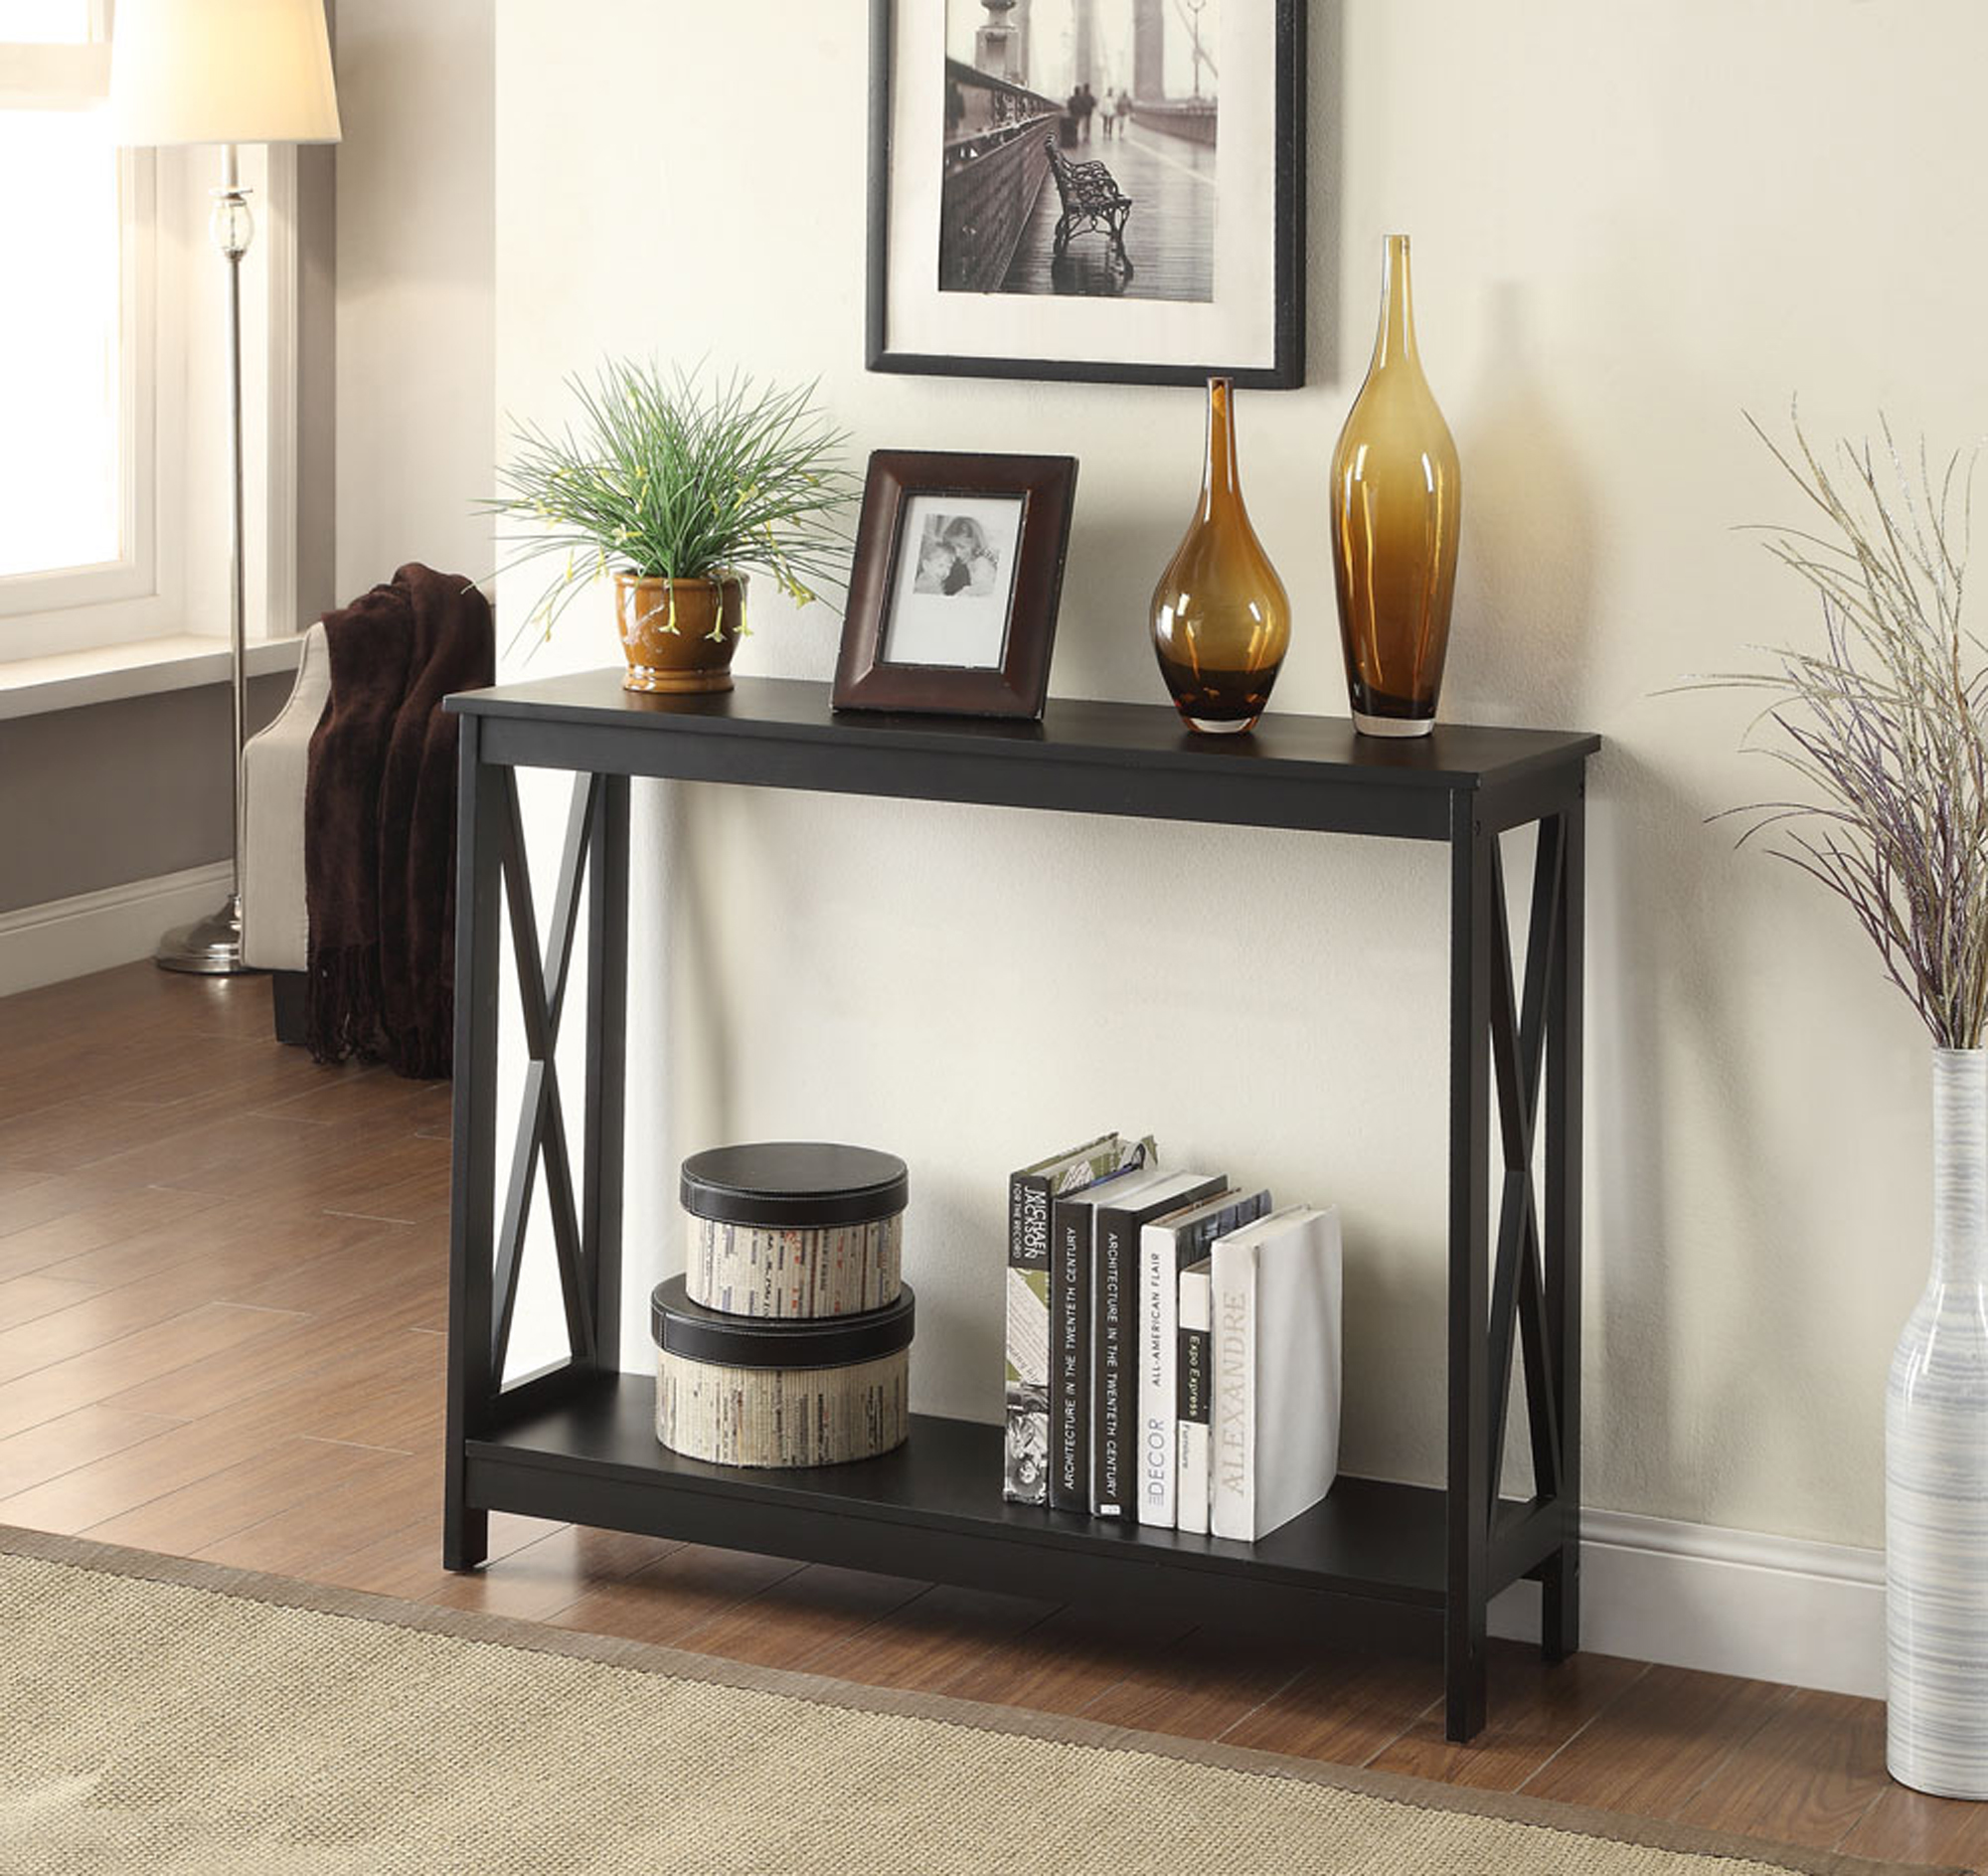 Free 2 Day Shipping Buy Convenience Concepts Oxford Console Table Black At Walmart Com In 2020 Console Table Convenience Concepts Furniture